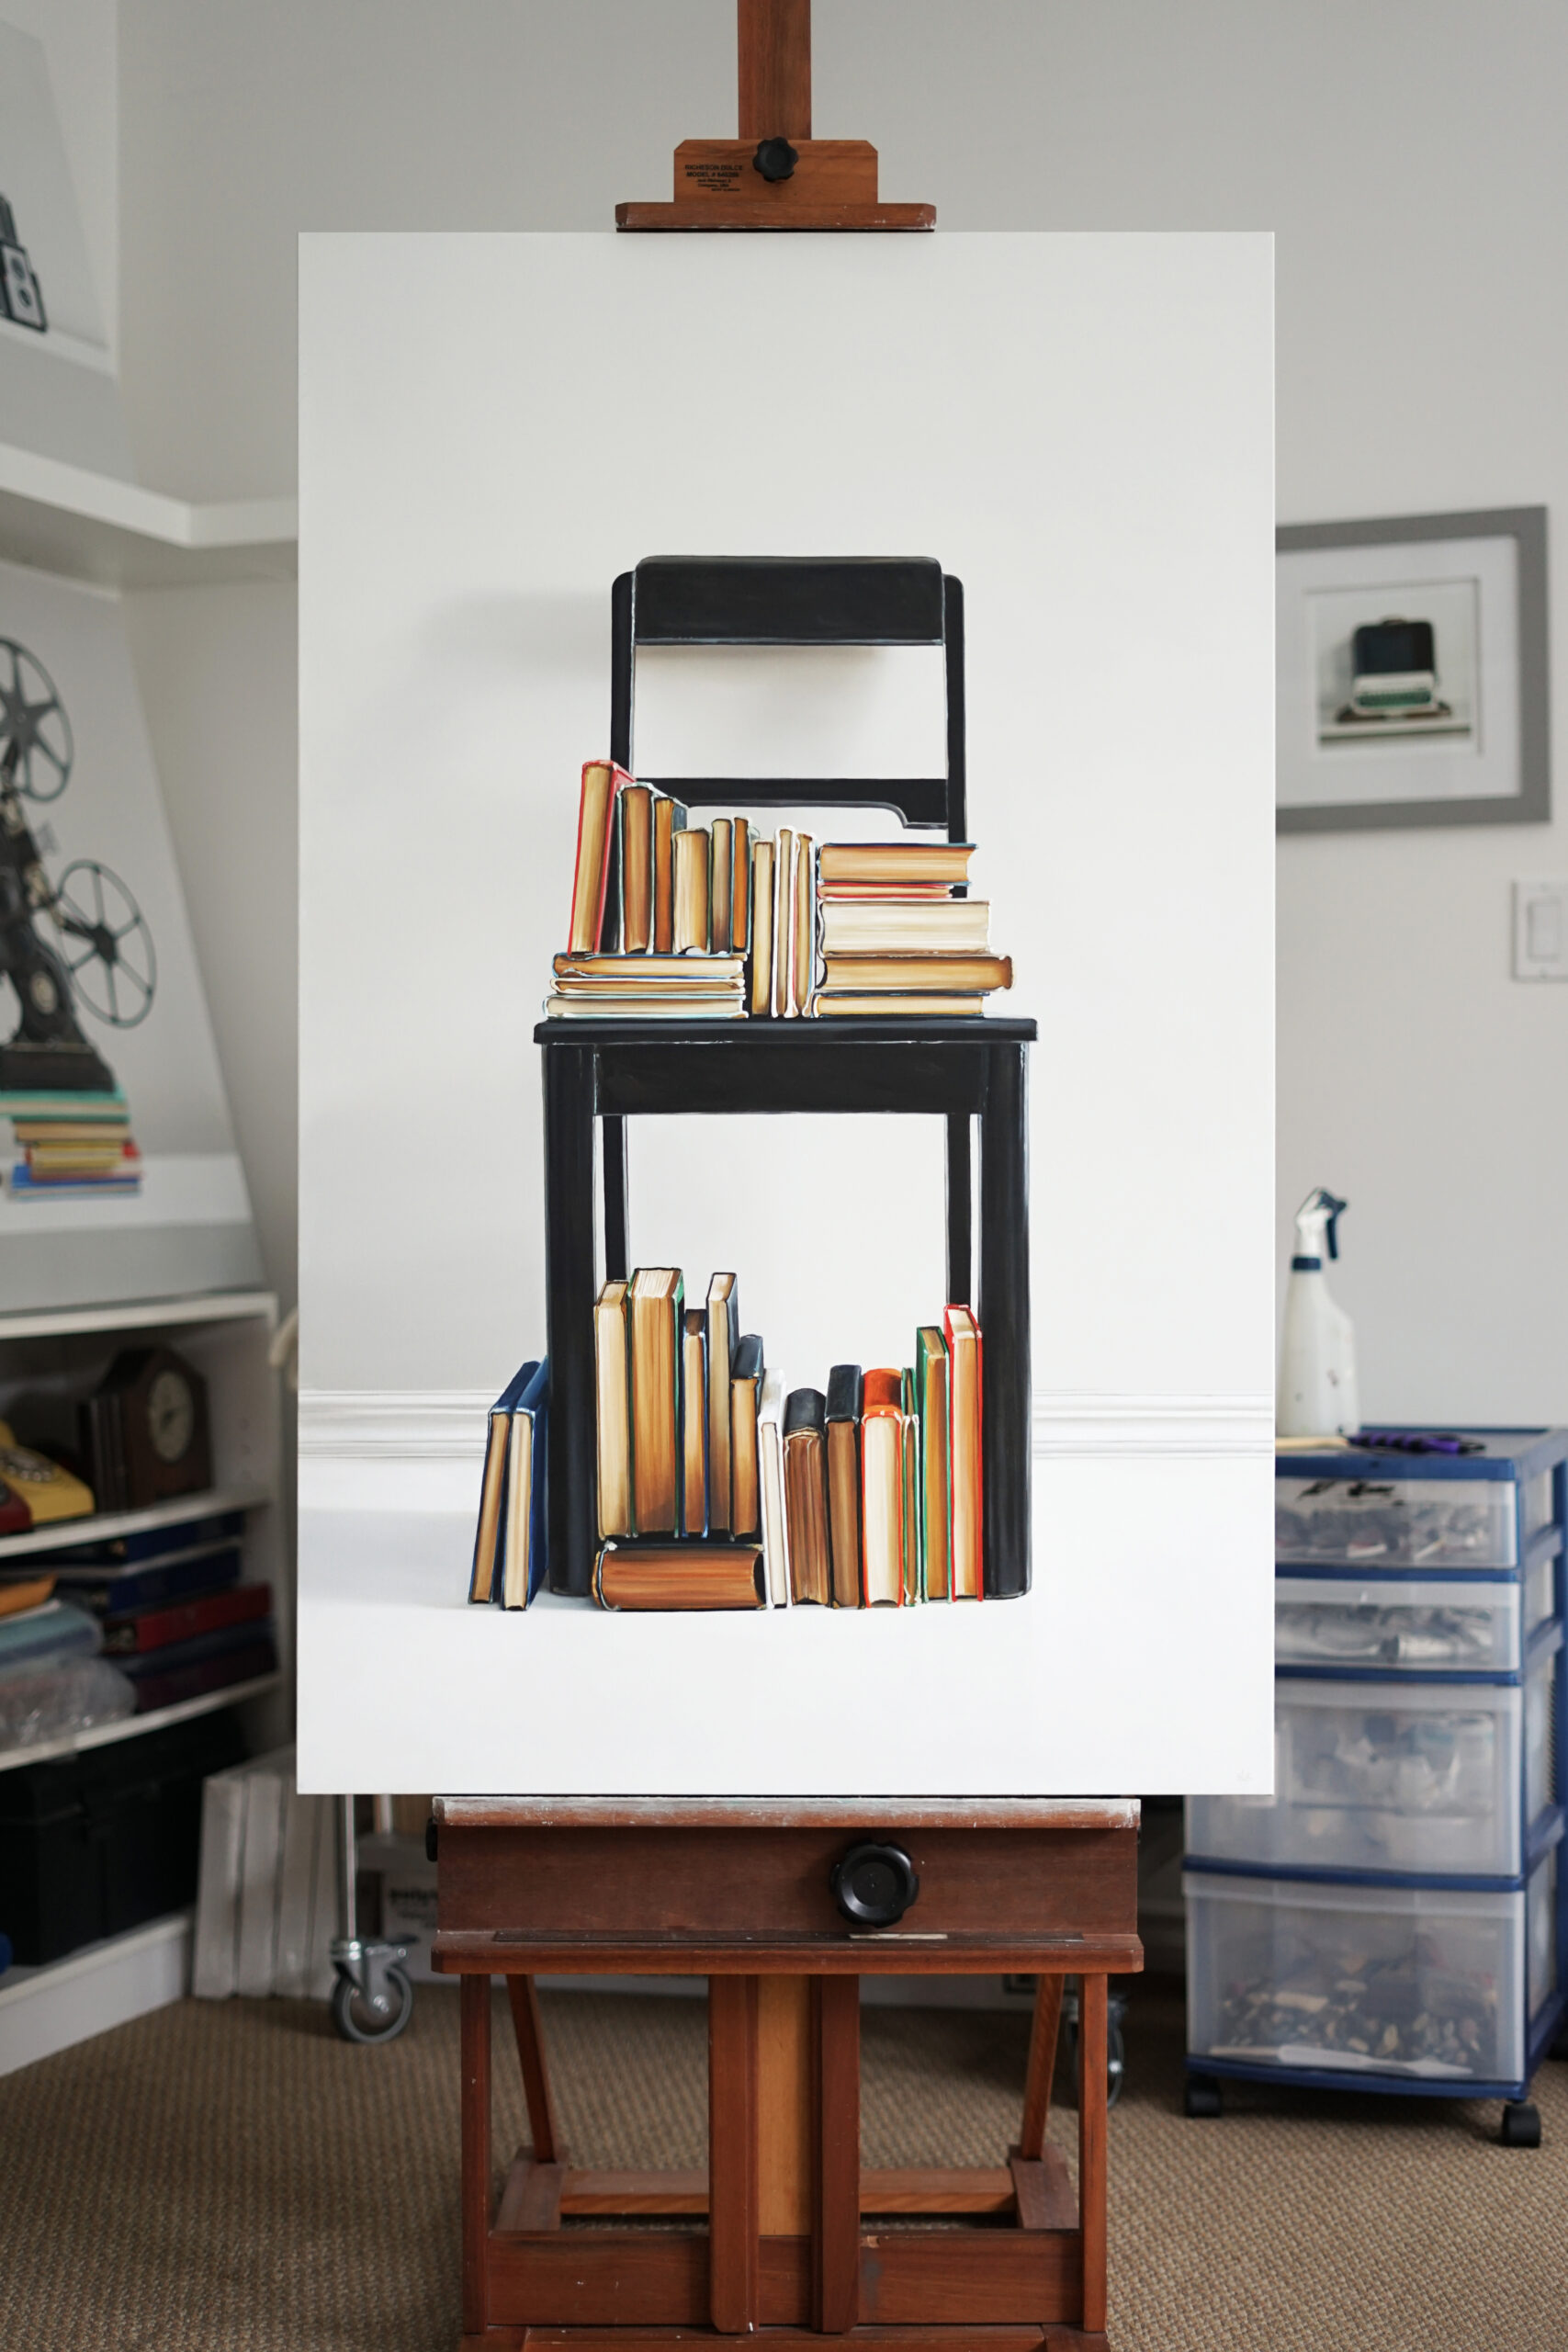 Chair and Books Two Painting by Christopher Stott